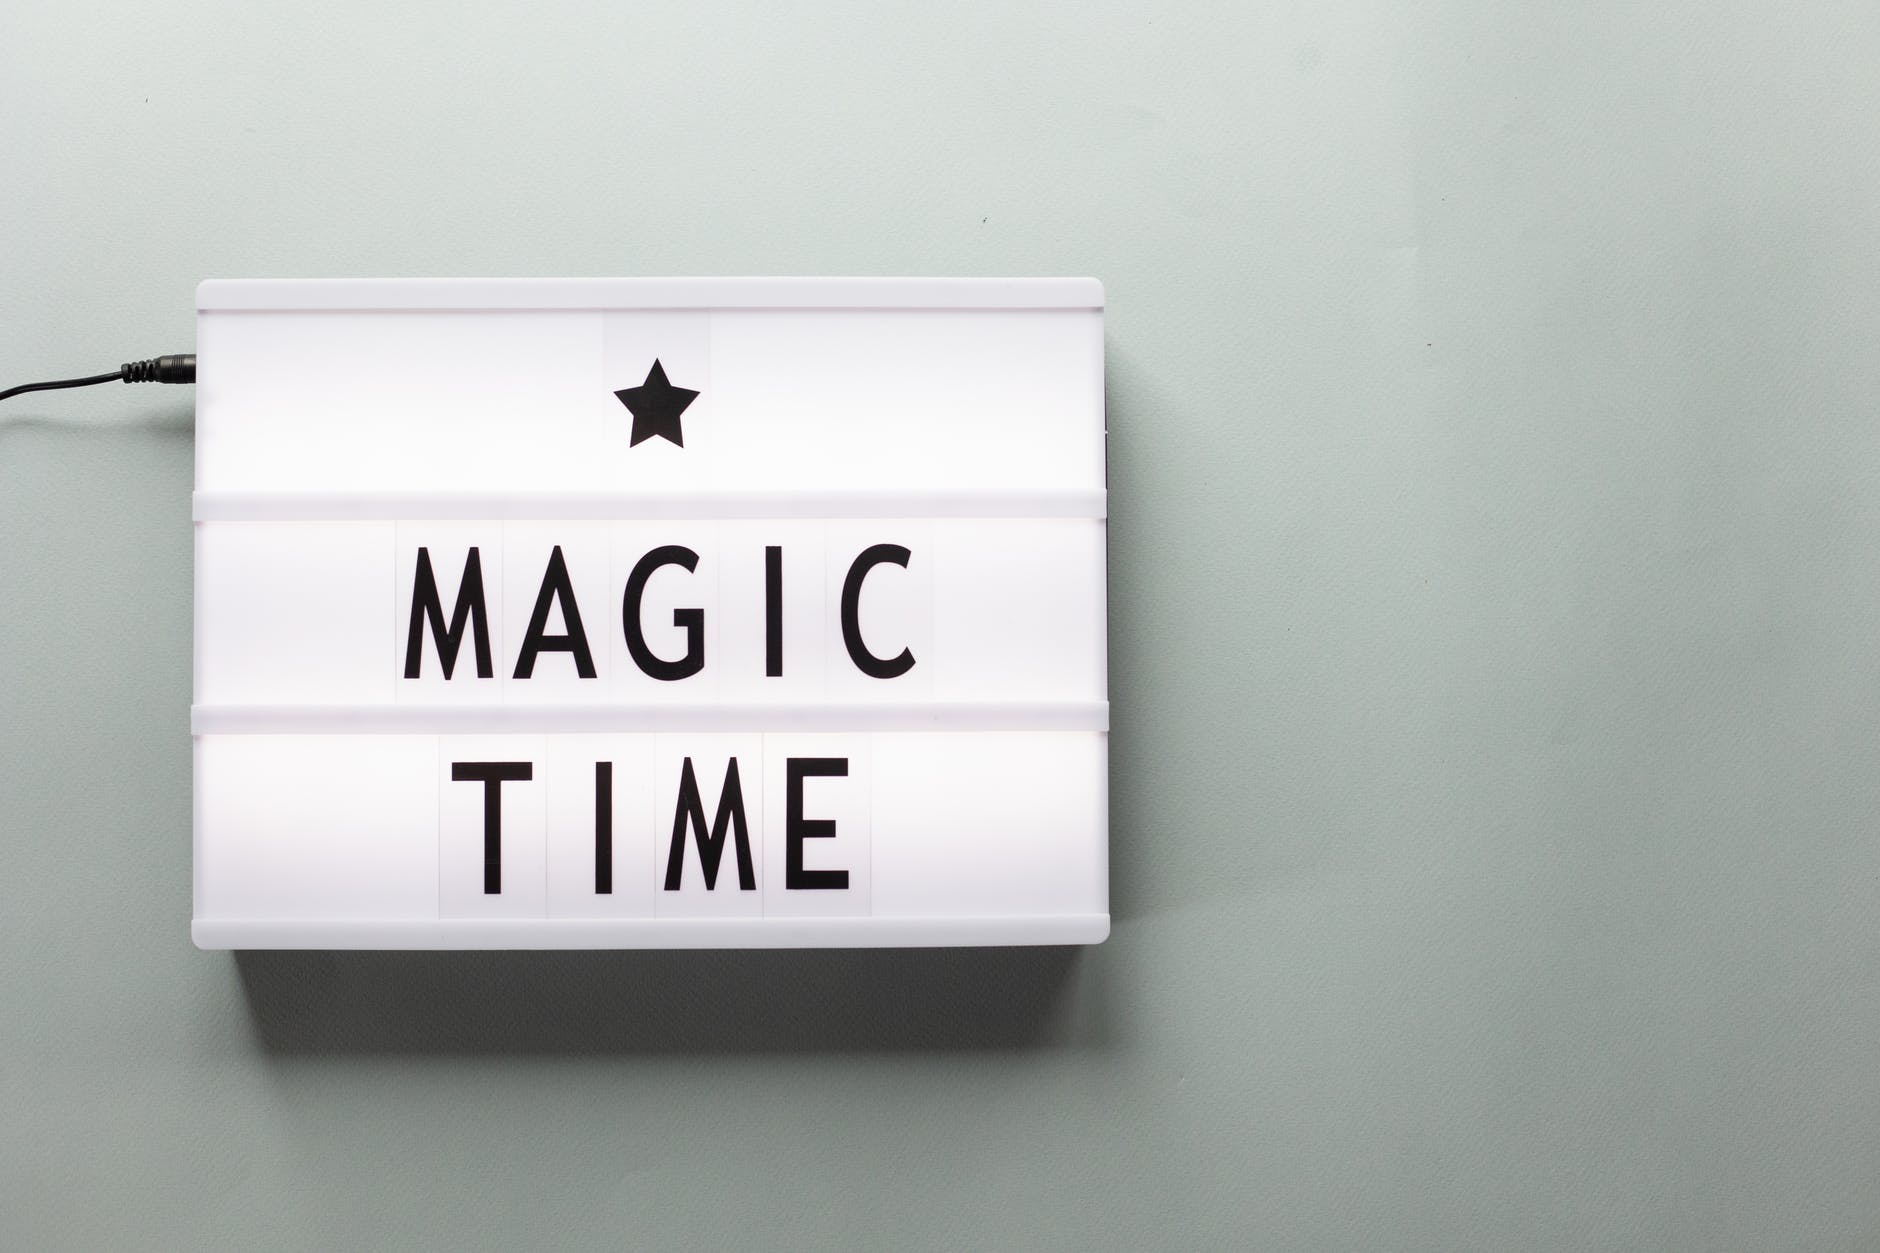 magic time title on light box during new year holiday